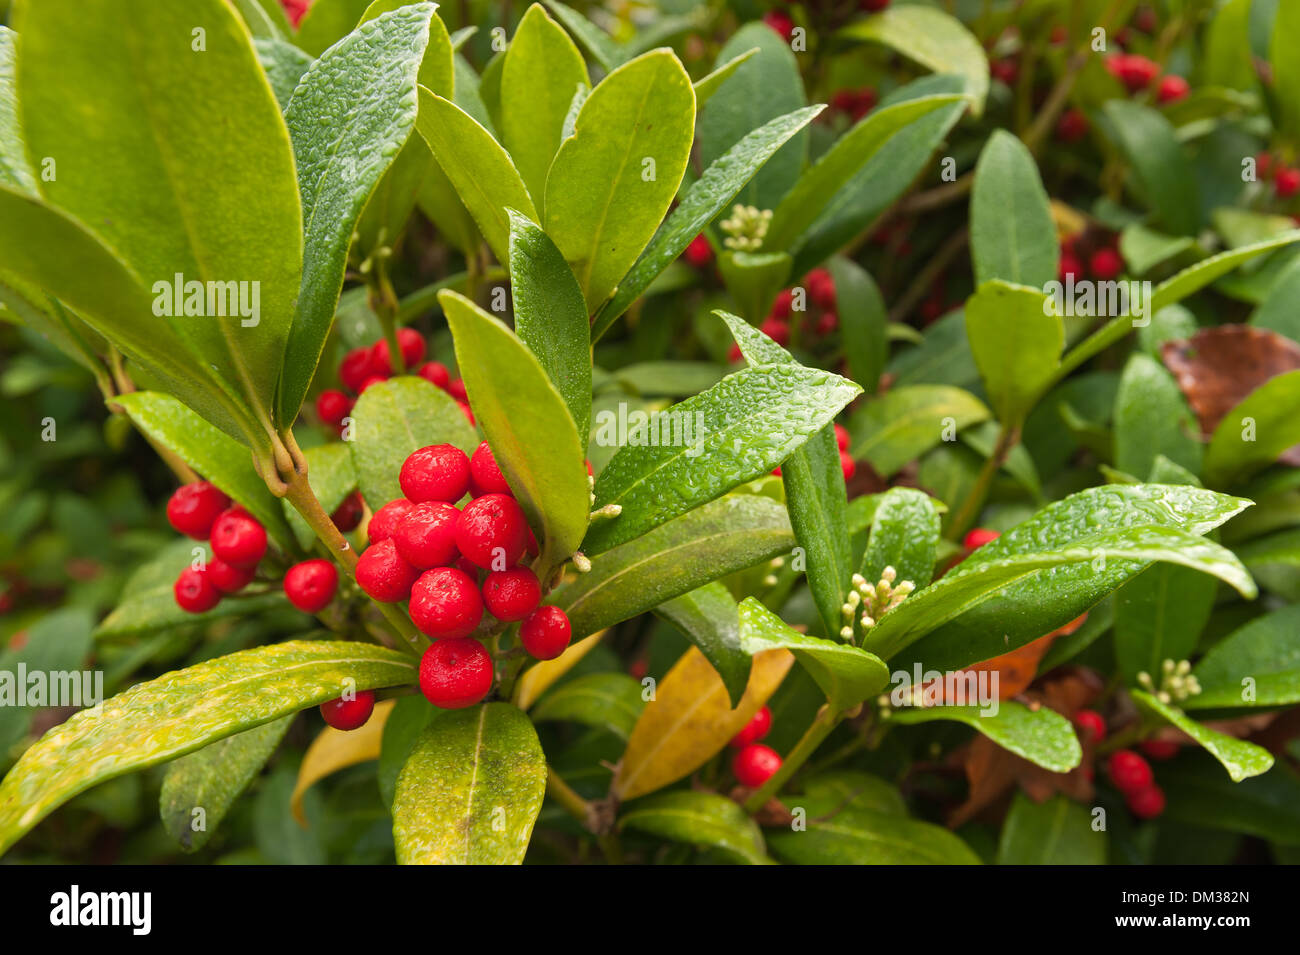 A Winter Wonderland Evergreen Shrub With Glossy Leaves And Red